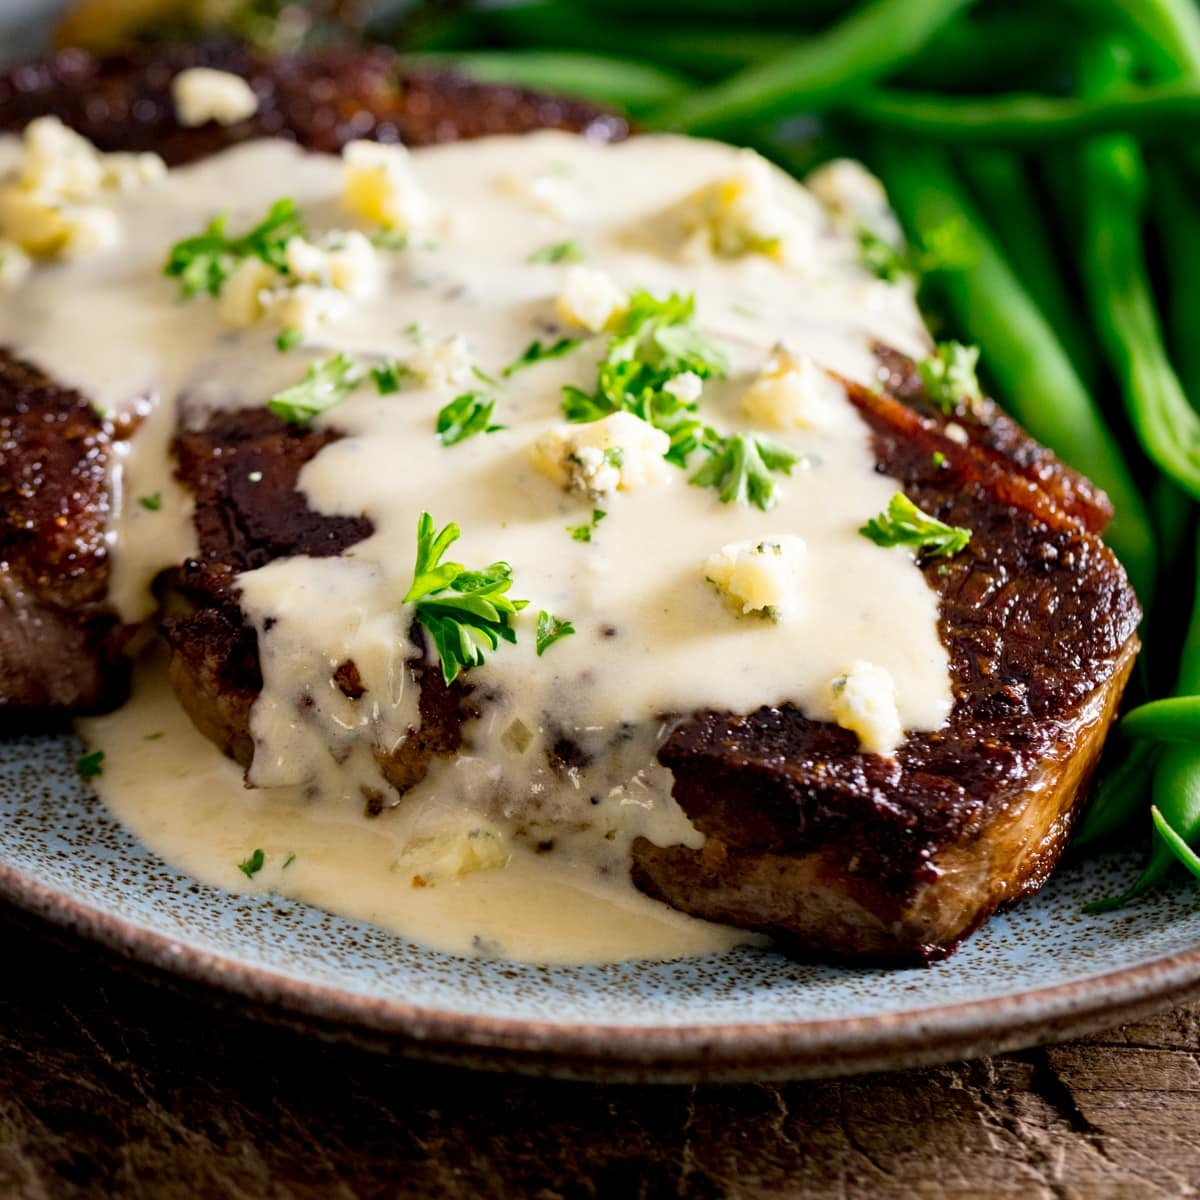 A cooked steak with blue cheese sauce over the top with some green beans, served on a blue plate